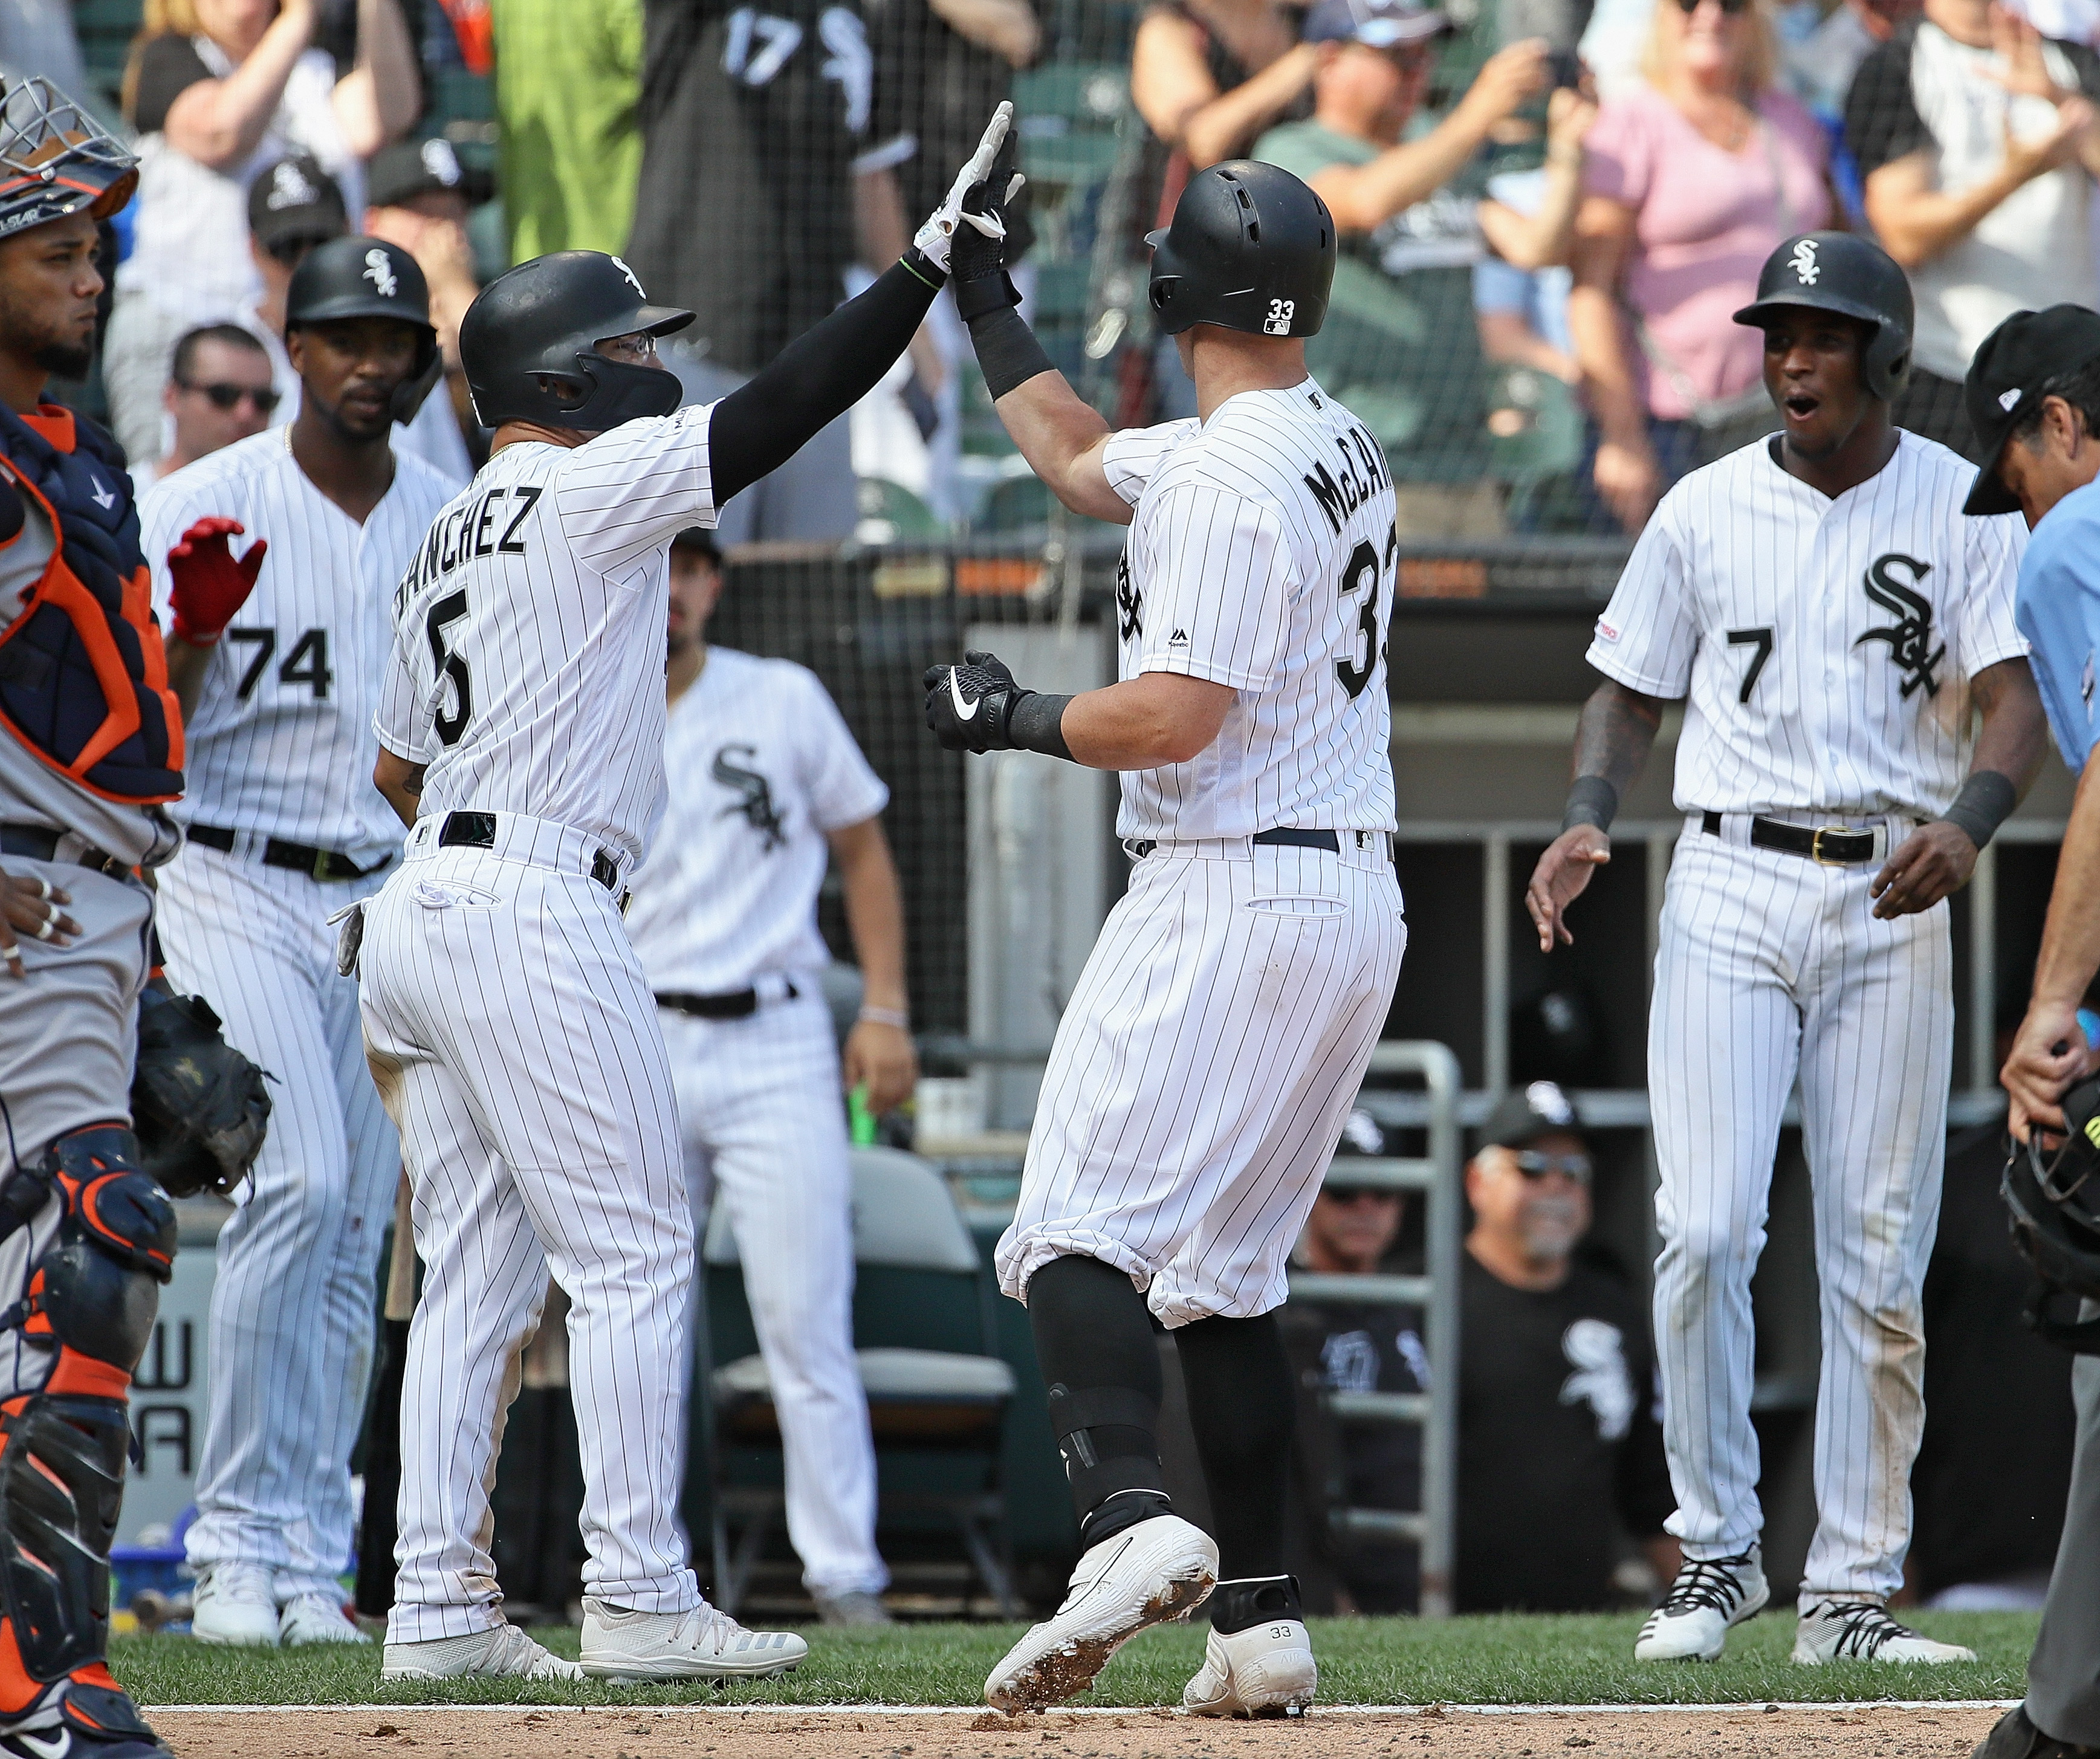 James McCann #33 of the Chicago White Sox celebrates with teammates including Yolmer Sanchez #5 after hitting the game winning, grand slam home run in the 8th inning against the Houston Astros at Guaranteed Rate Field on August 14, 2019 in Chicago, Illino